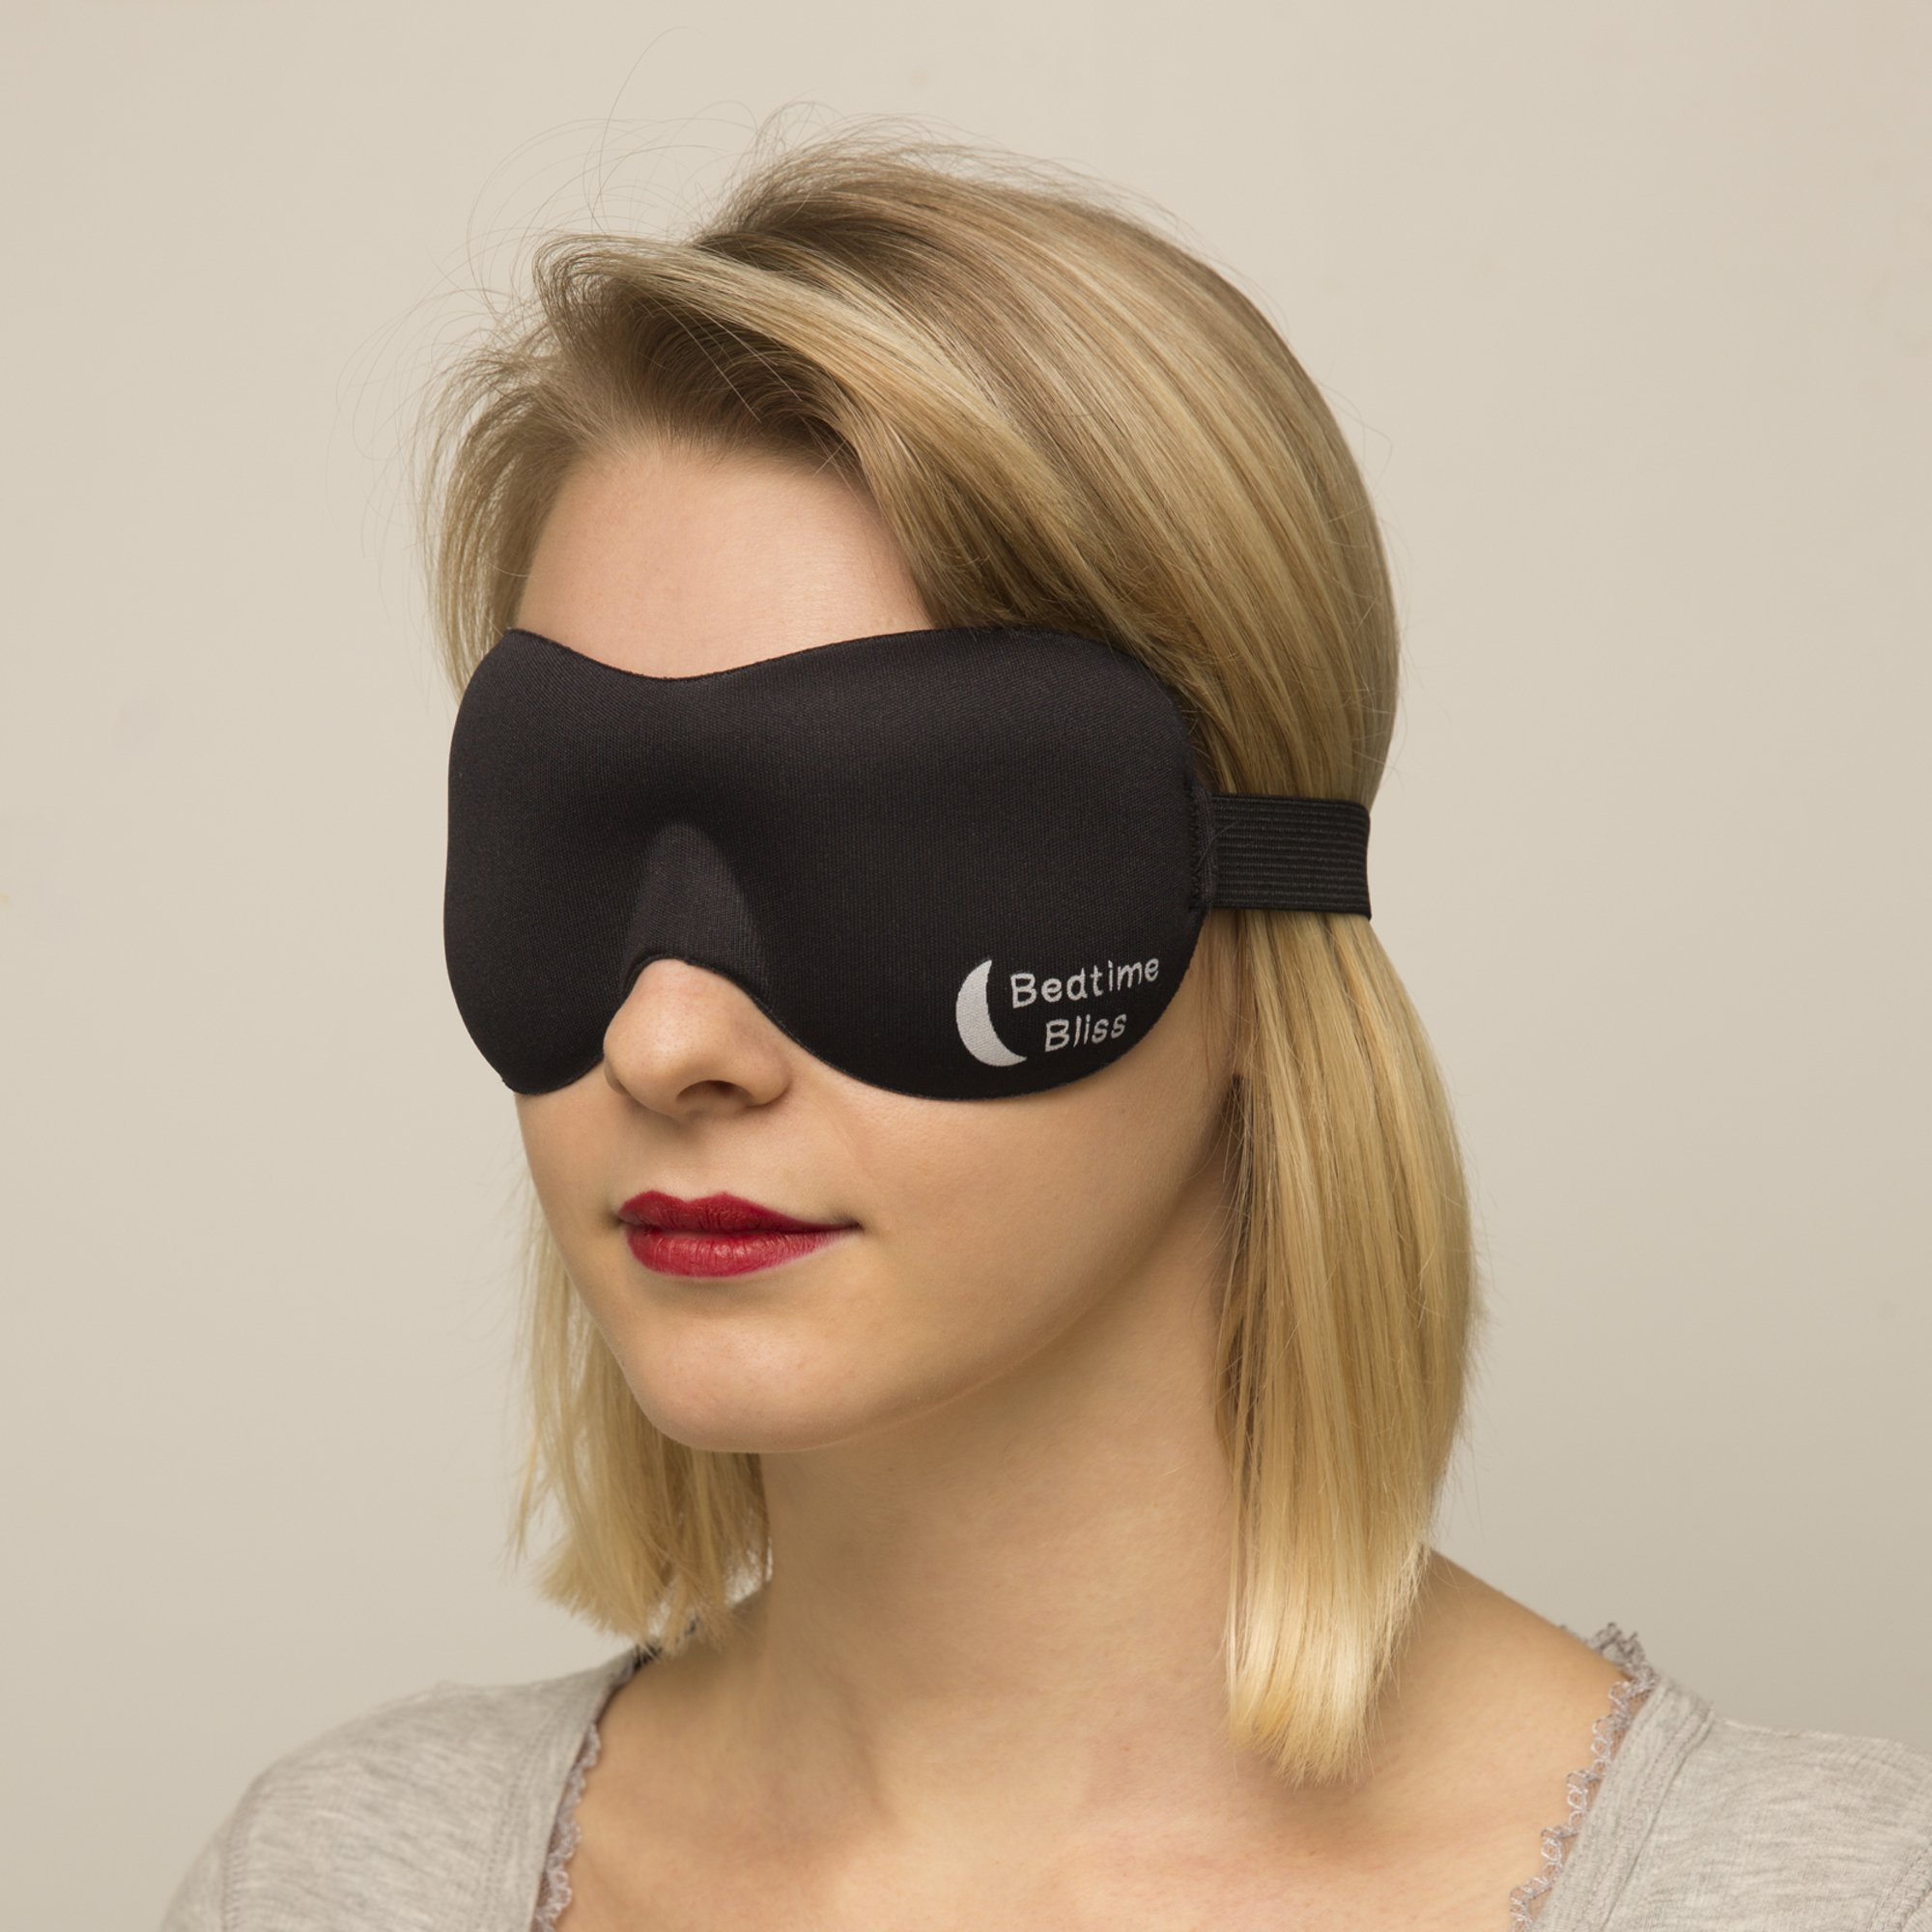 Sleep Mask by Bedtime Bliss® - Contoured & Comfortable With Moldex® Ear Plug Set. Includes Carry Pouch for Eye Mask and Ear Plugs - Great for Travel, Shift Work & Meditation (Black) by Bedtime Bliss (Image #4)